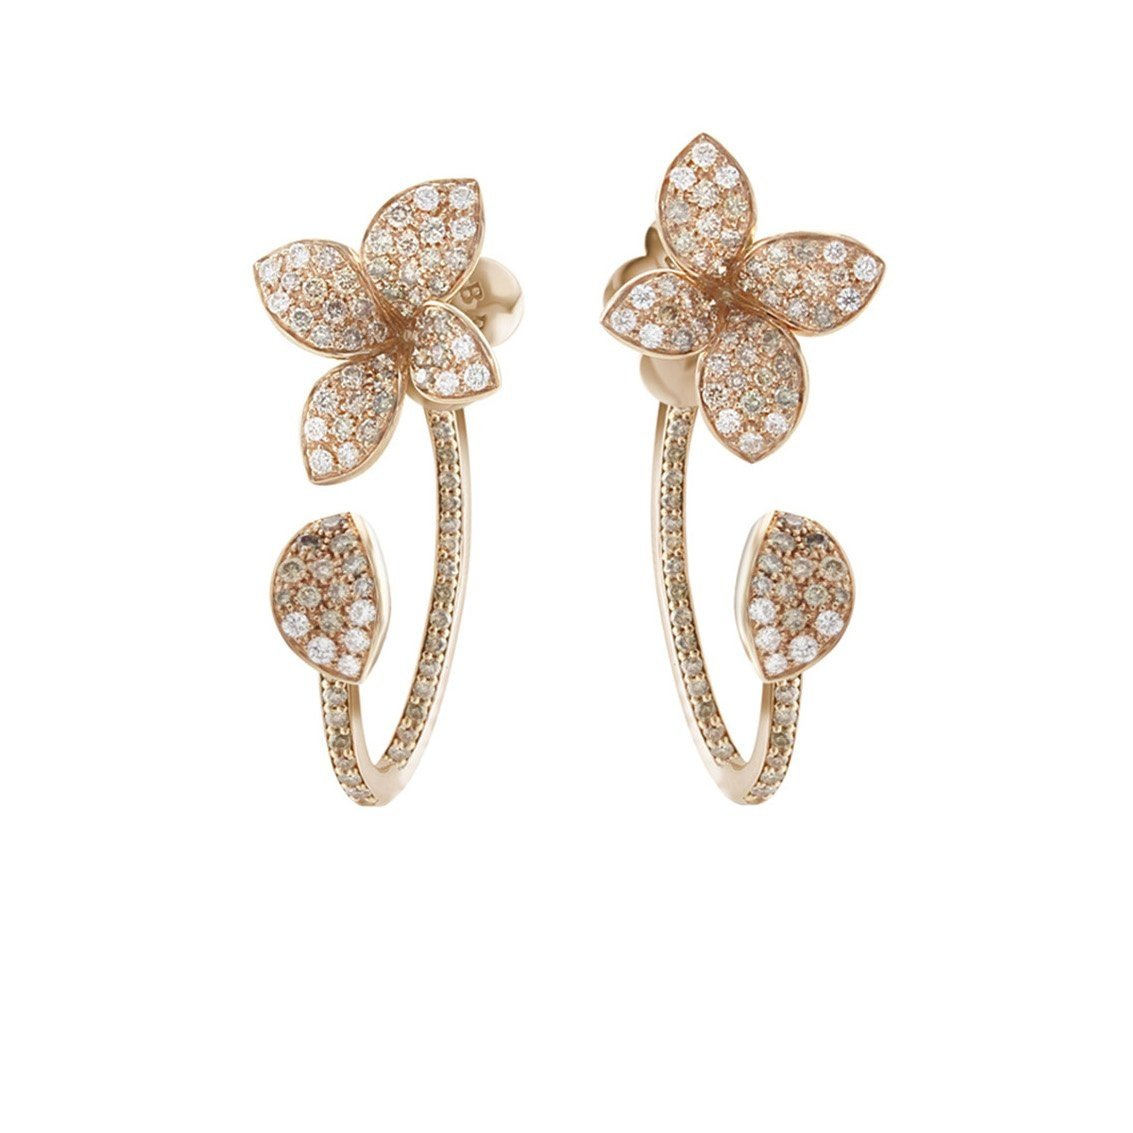 PETIT GARDEN EARRINGS WITH WHITE AND CHAMPAGNE DIAMONDS